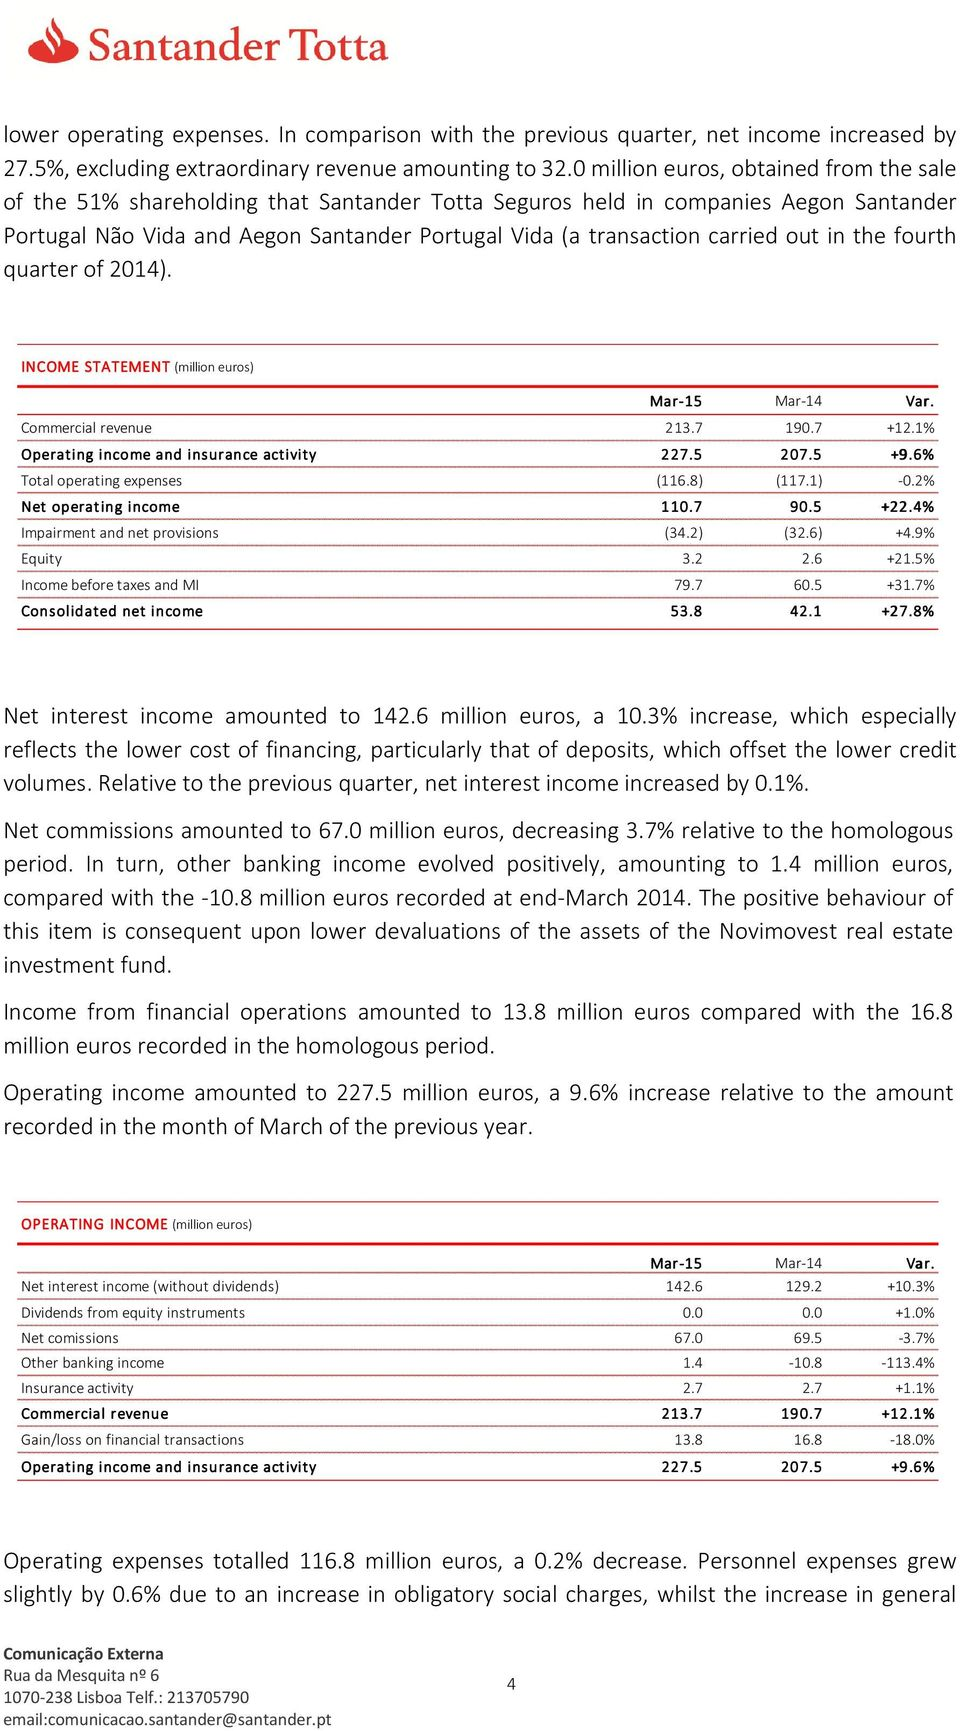 carried out in the fourth quarter of 2014). INCOME STATEMENT (million euros) Commercial revenue 213.7 190.7 +12.1% Operating income and insurance activity 227.5 207.5 +9.